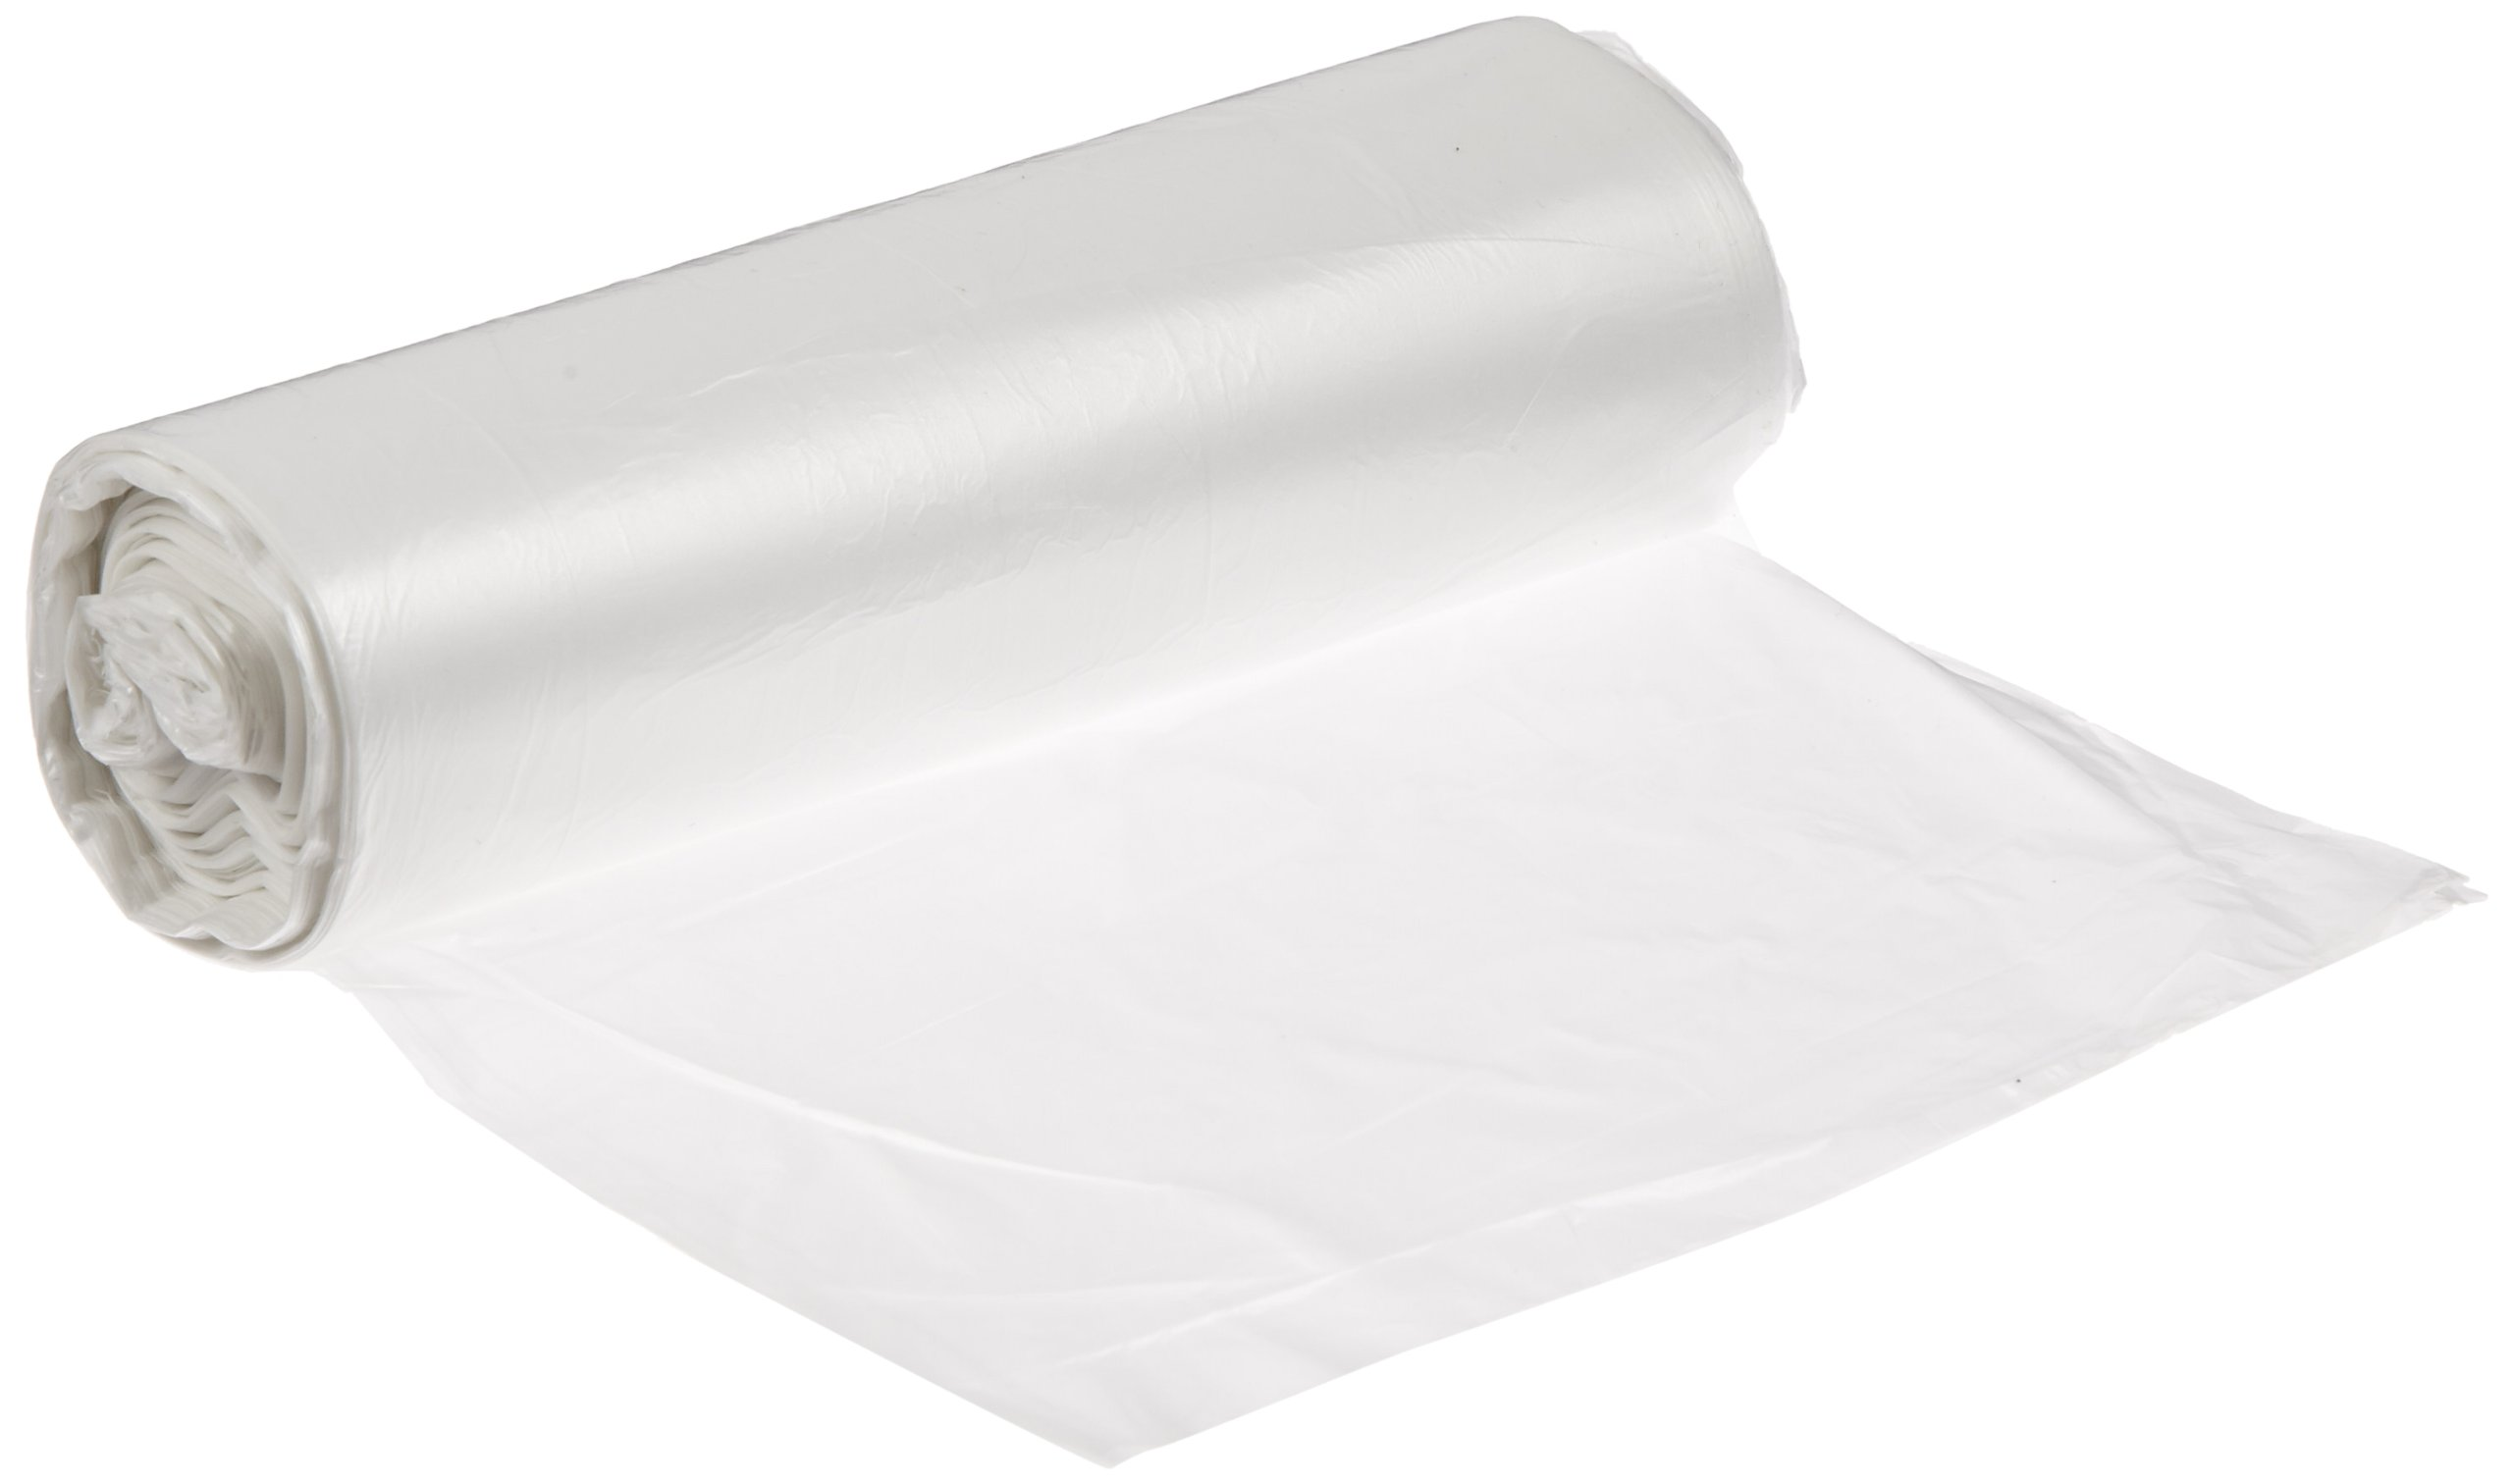 Spectrum CP242406N HDPE Institutional Trash Can Liner, 7-10 Gallon Capacity, 24'' Length x 24'' Width x 6 Micron Thick, Natural (Case of 1000)